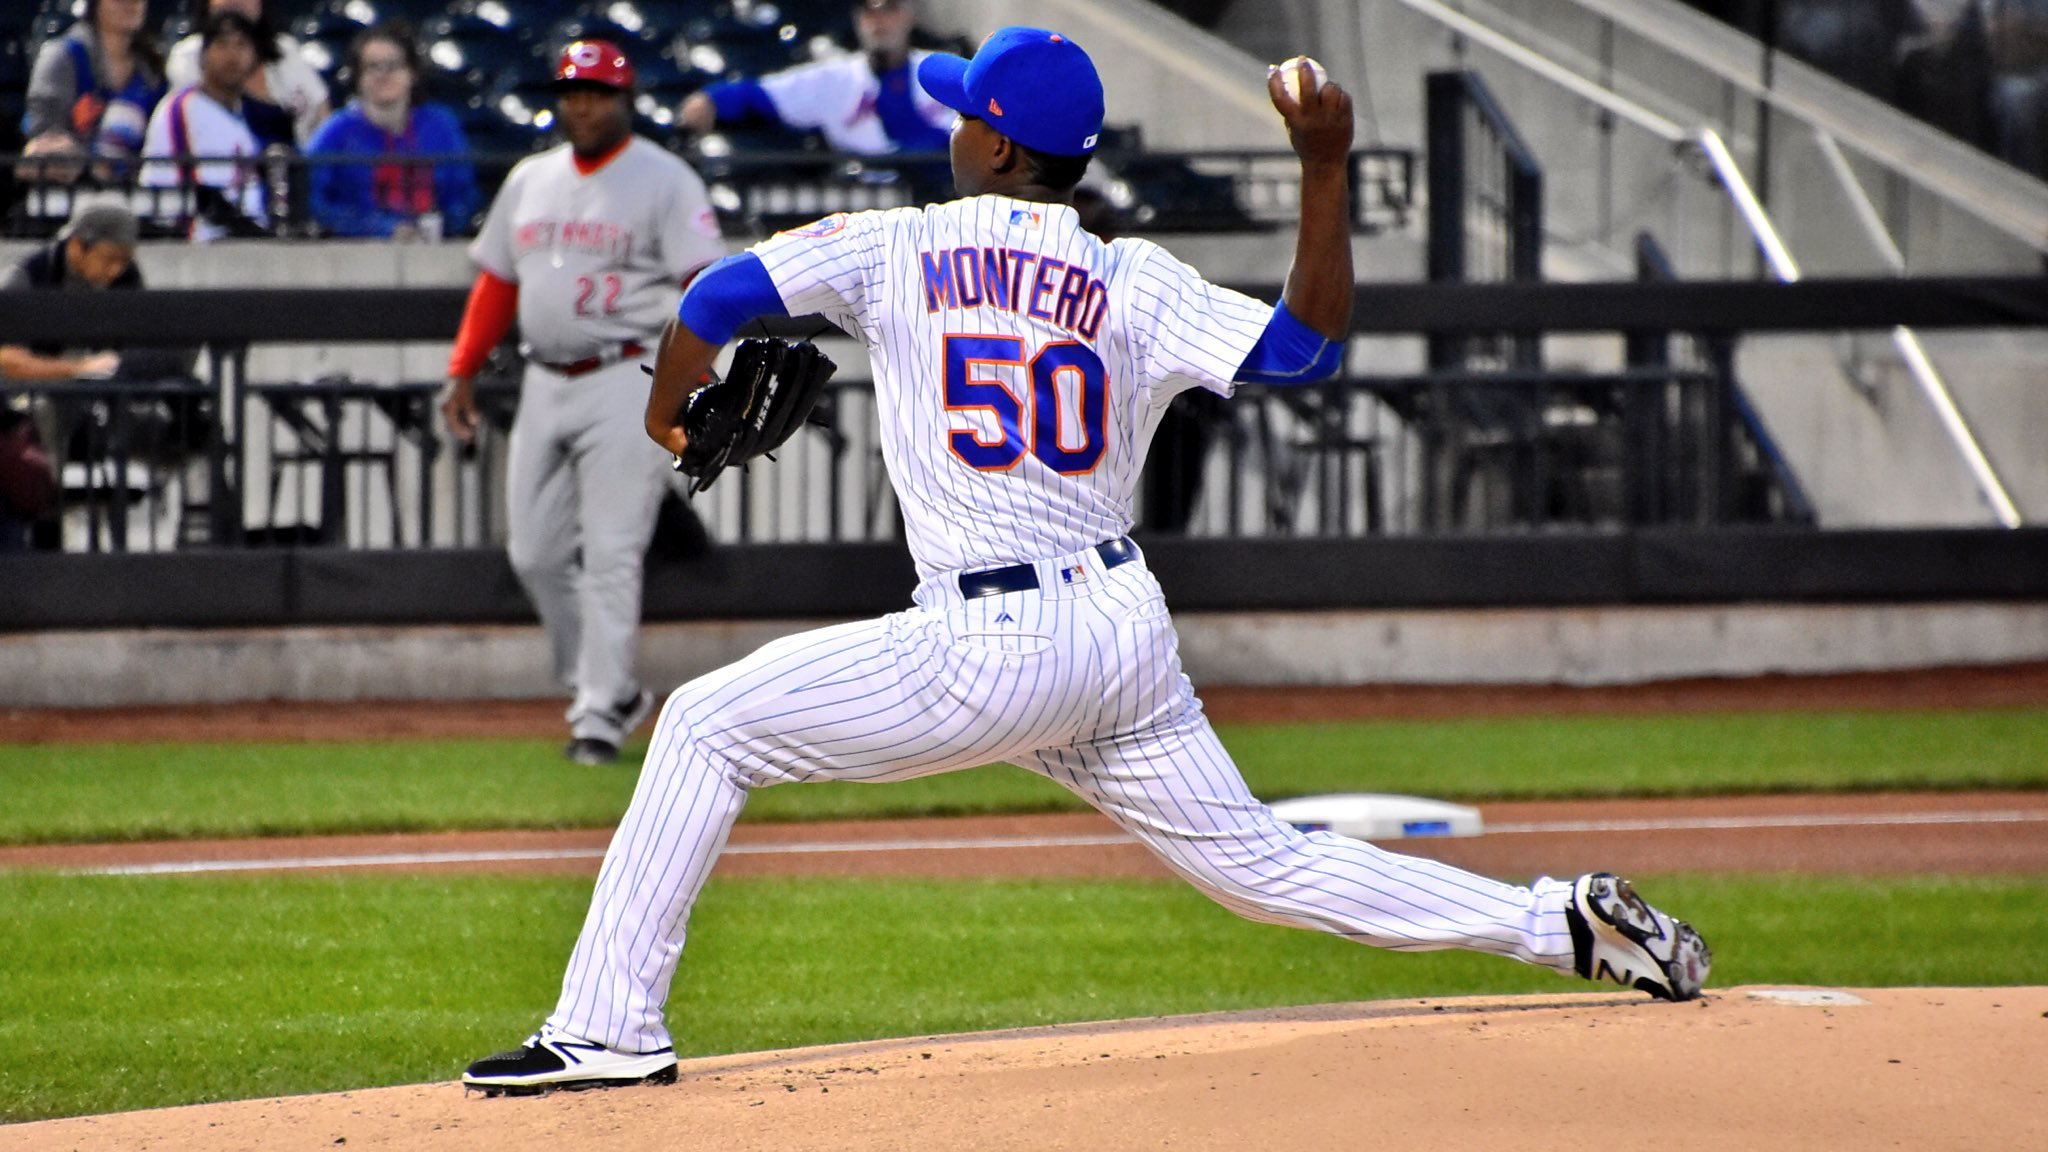 ������  Coming out dealing! Montero retires them quickly in the 1st. https://t.co/HbtbDB6f2K